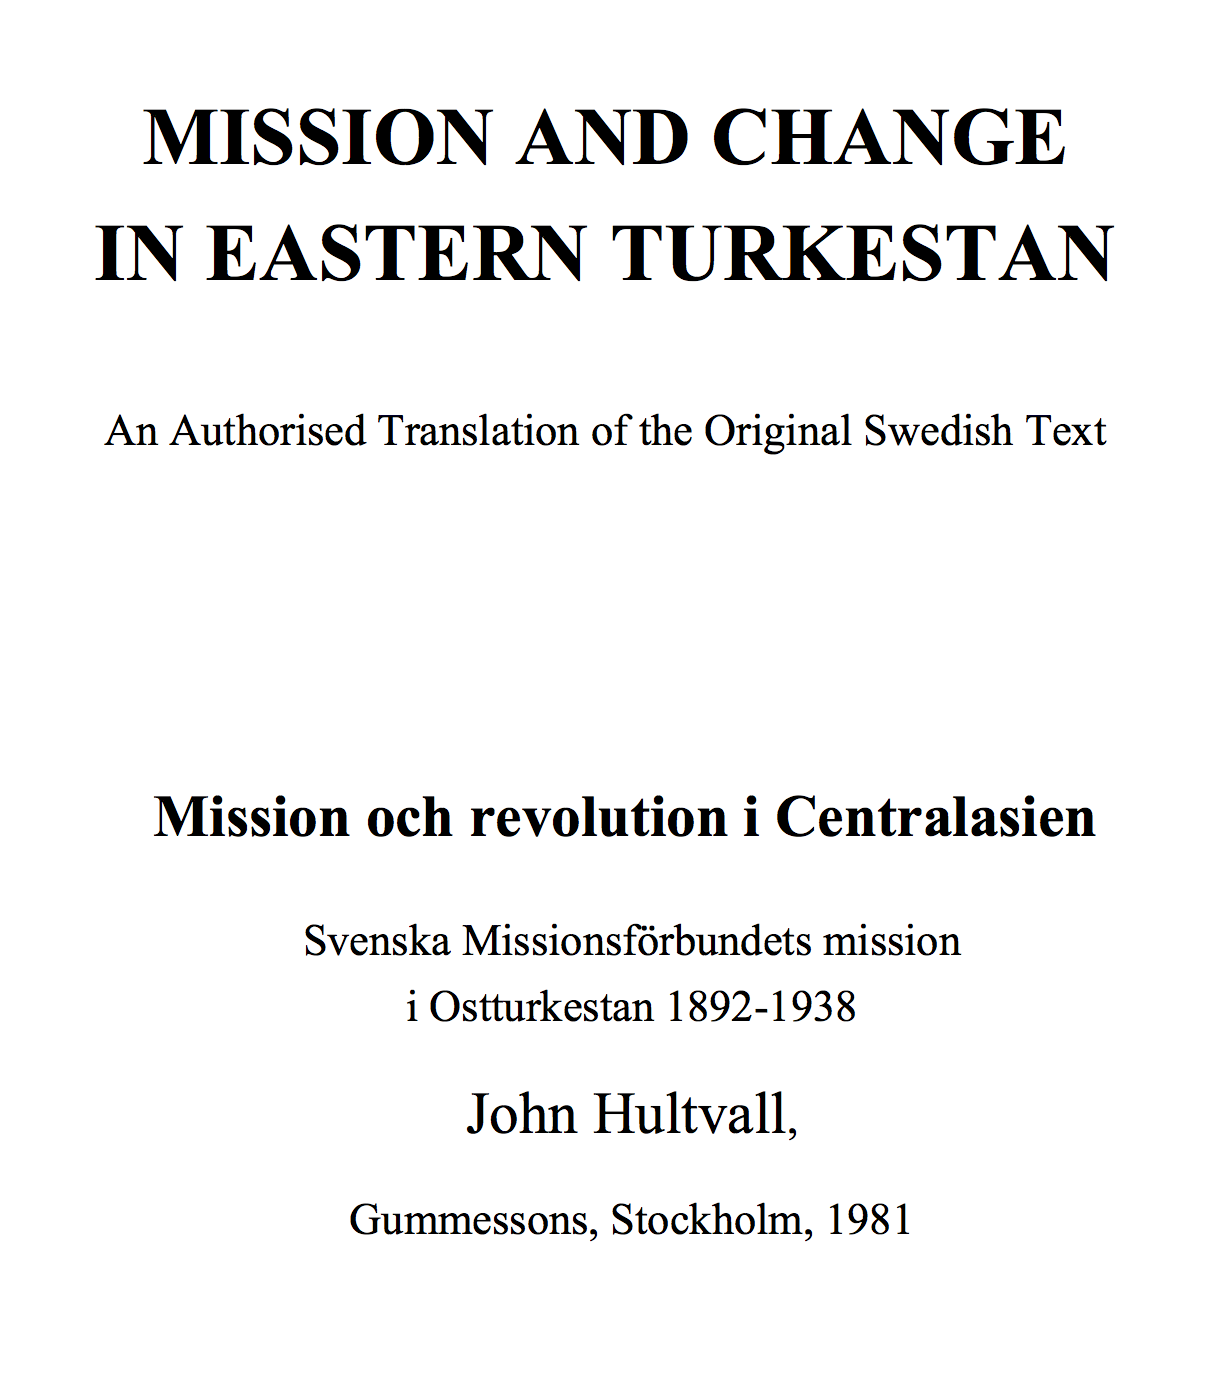 Mission and change in Eastern Turkestan John Hultvall